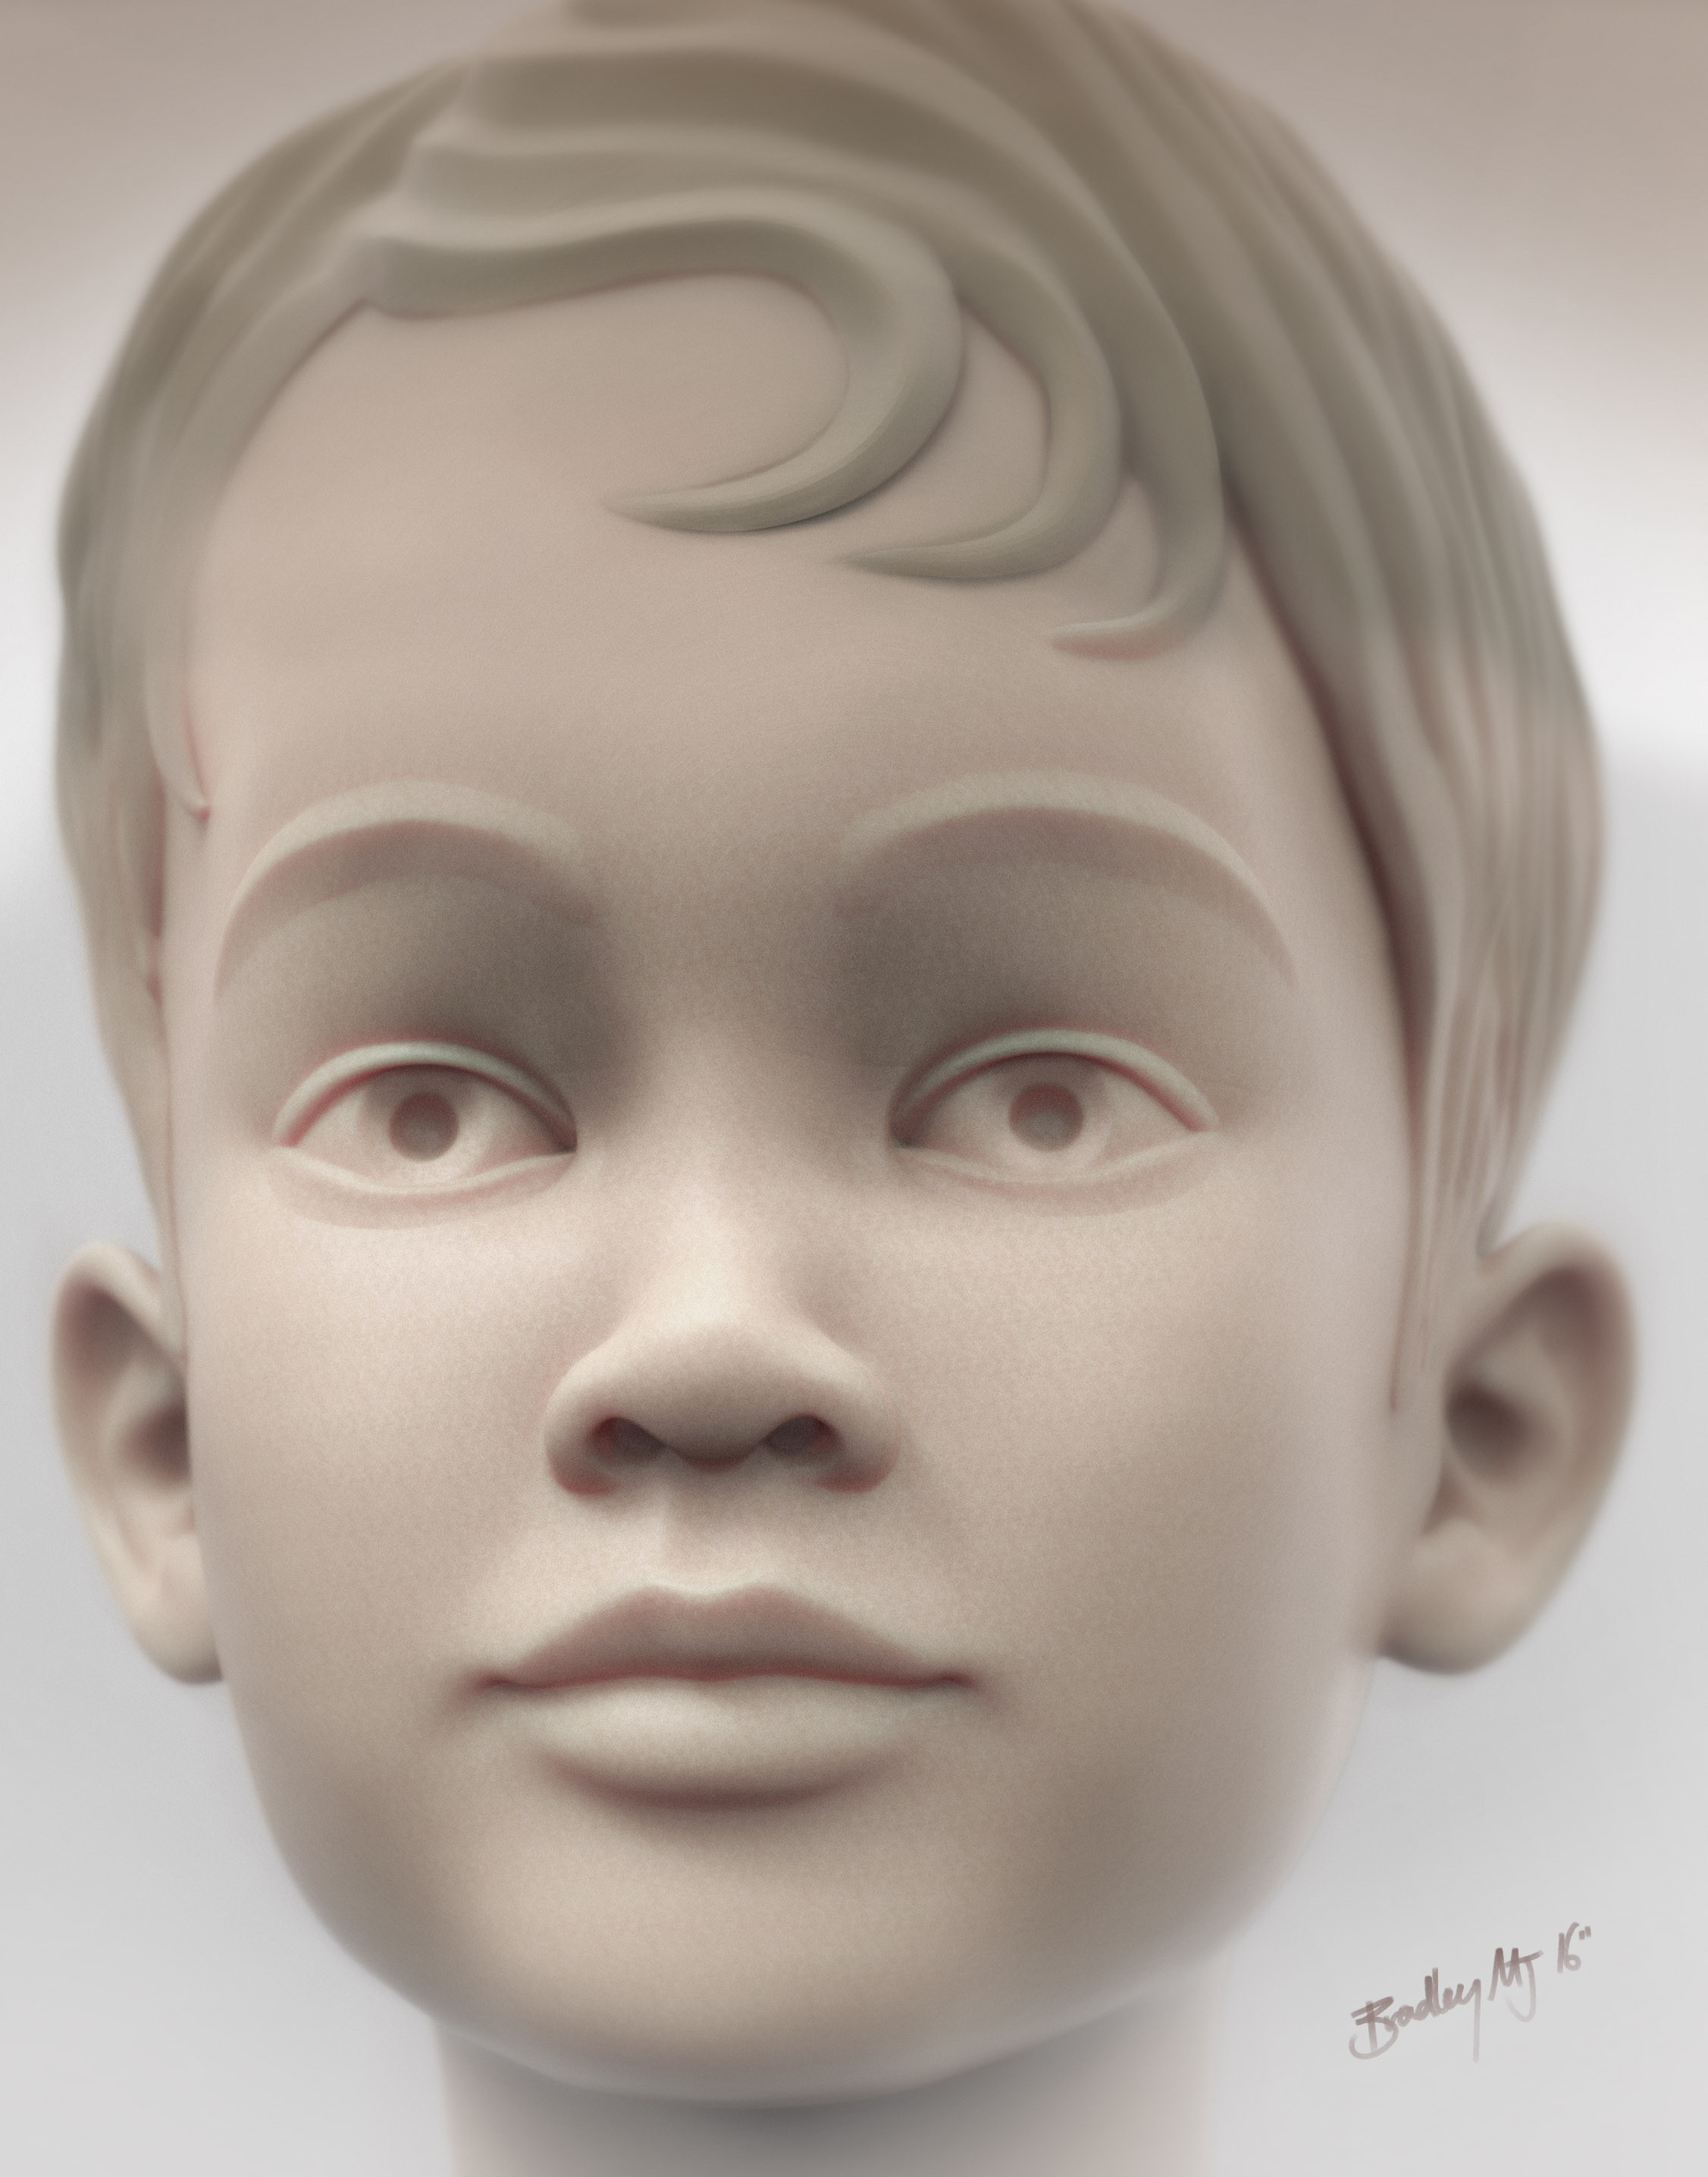 Final render of Z Brush 3D file